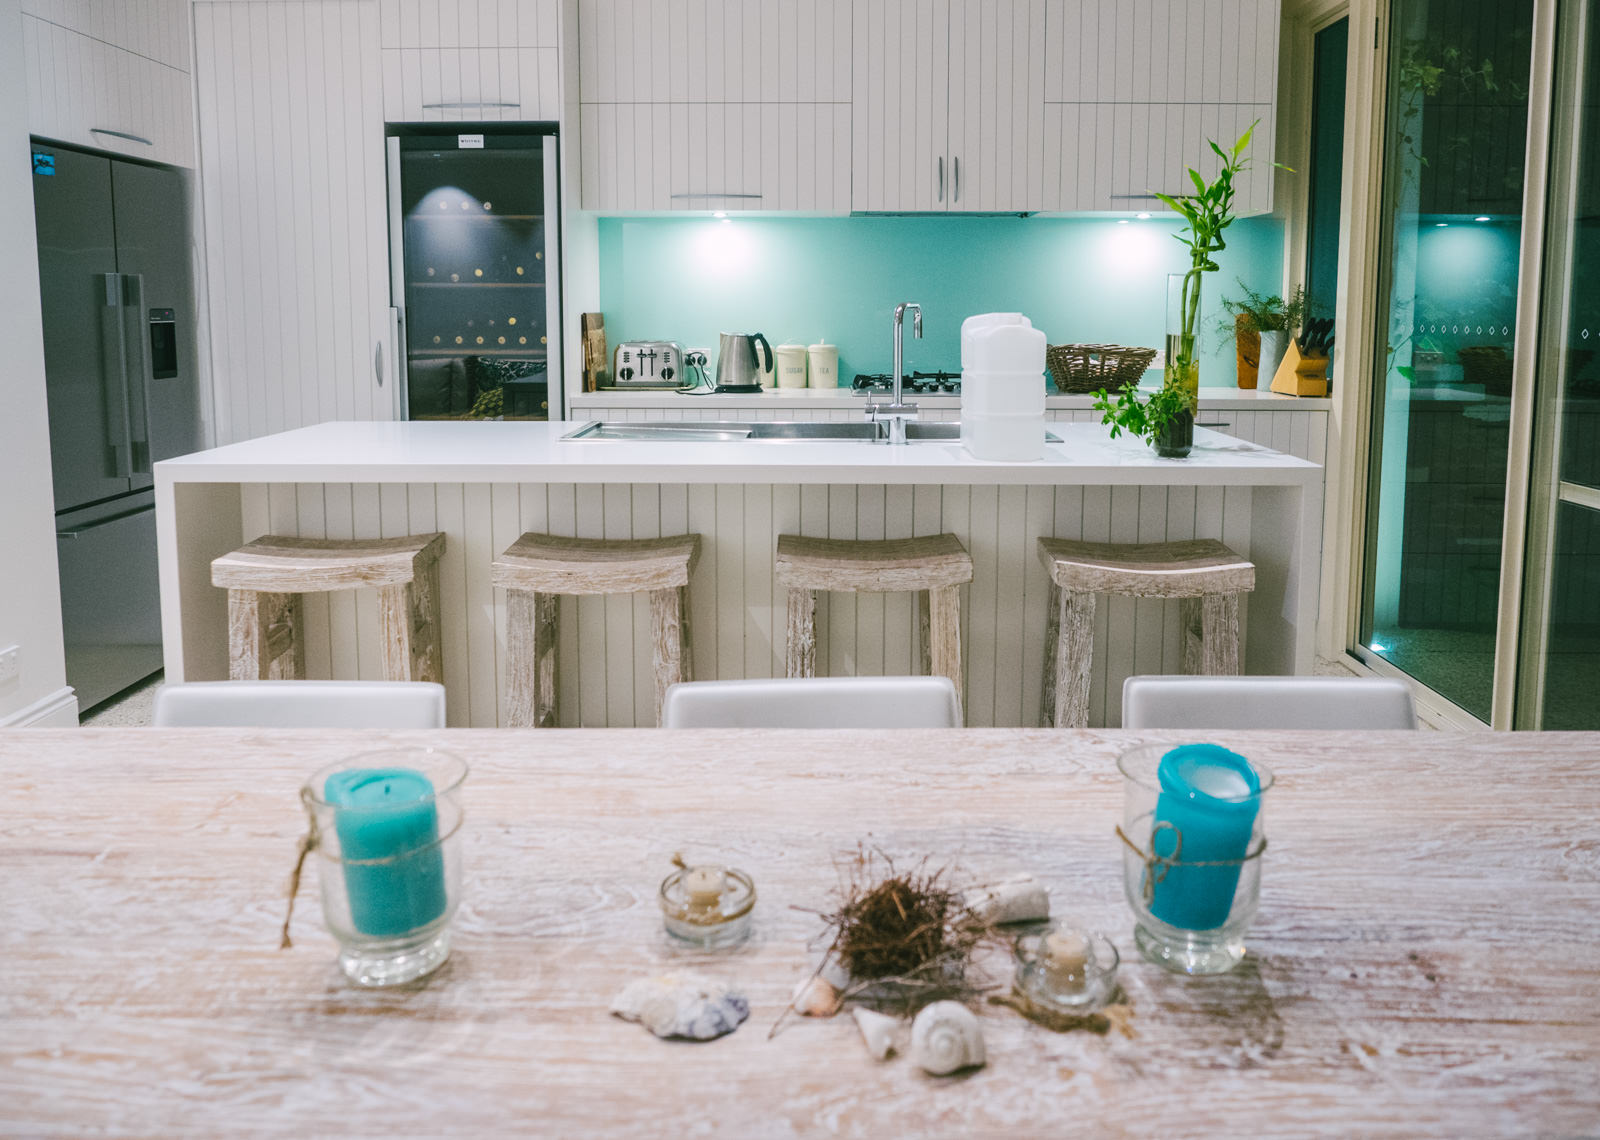 Perth, Australia - Beach Theme Airbnb - Kitchen